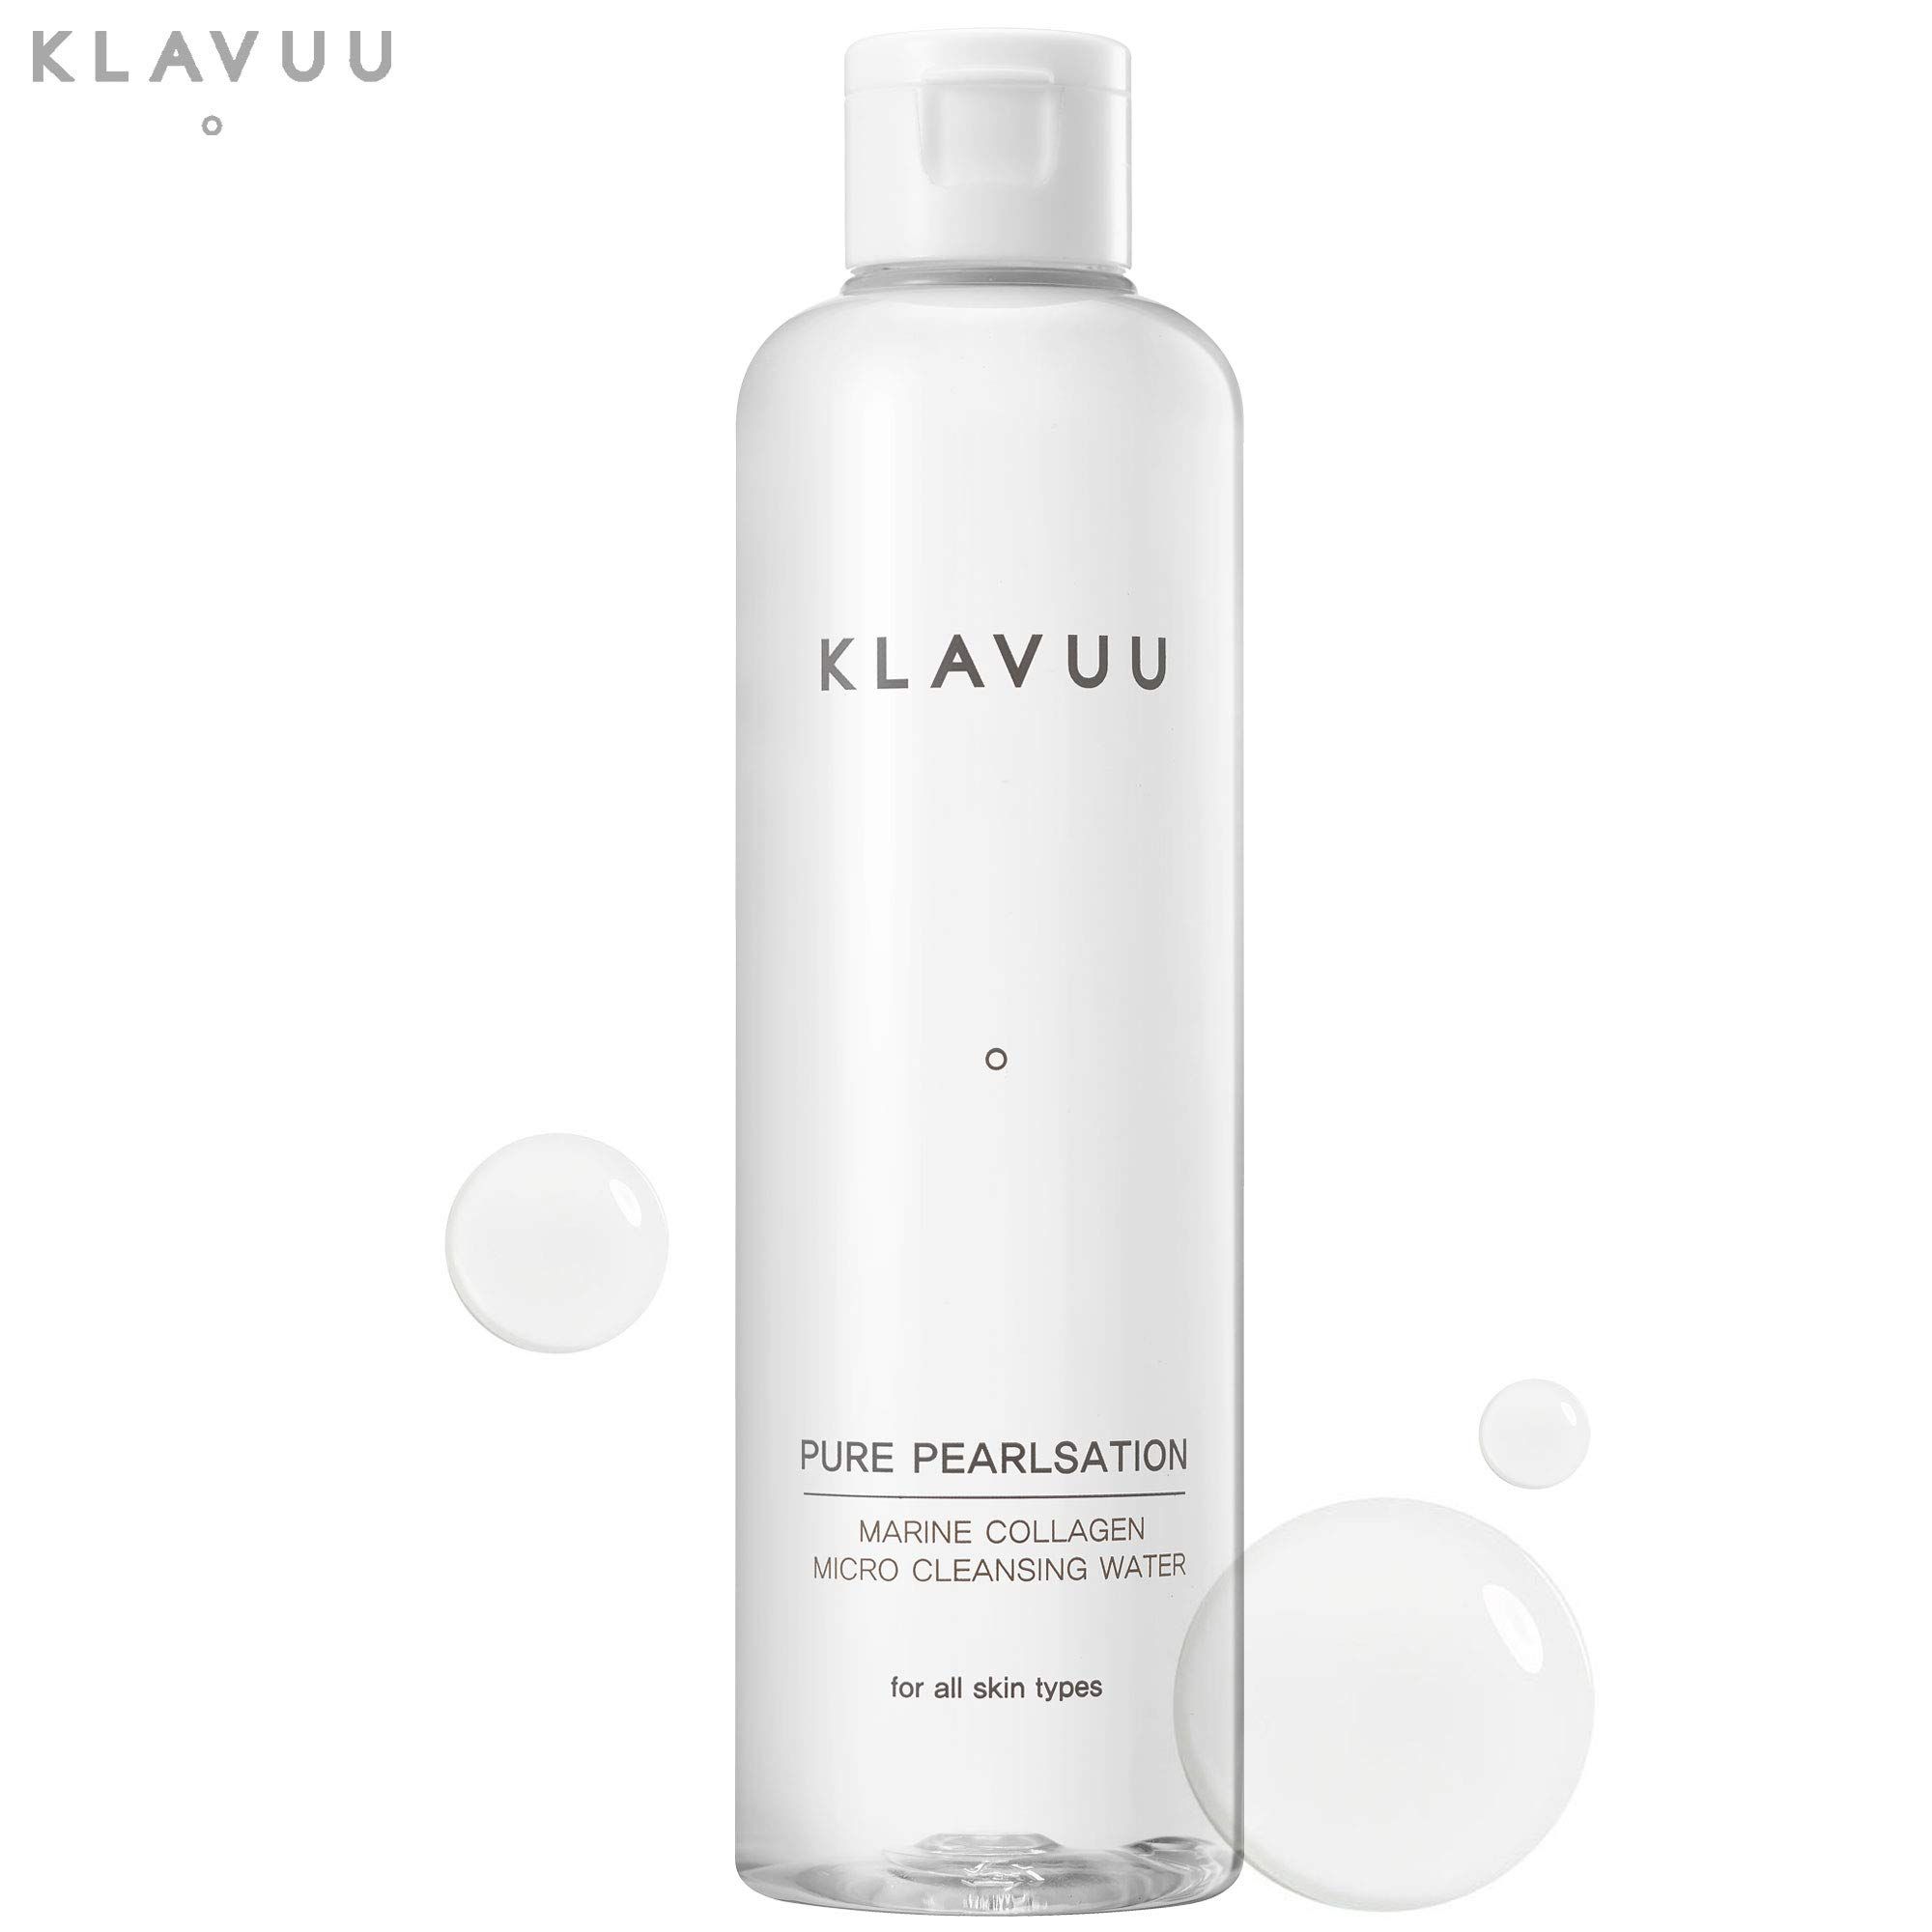 Black pearl micellar water: reviews about cosmetics, application